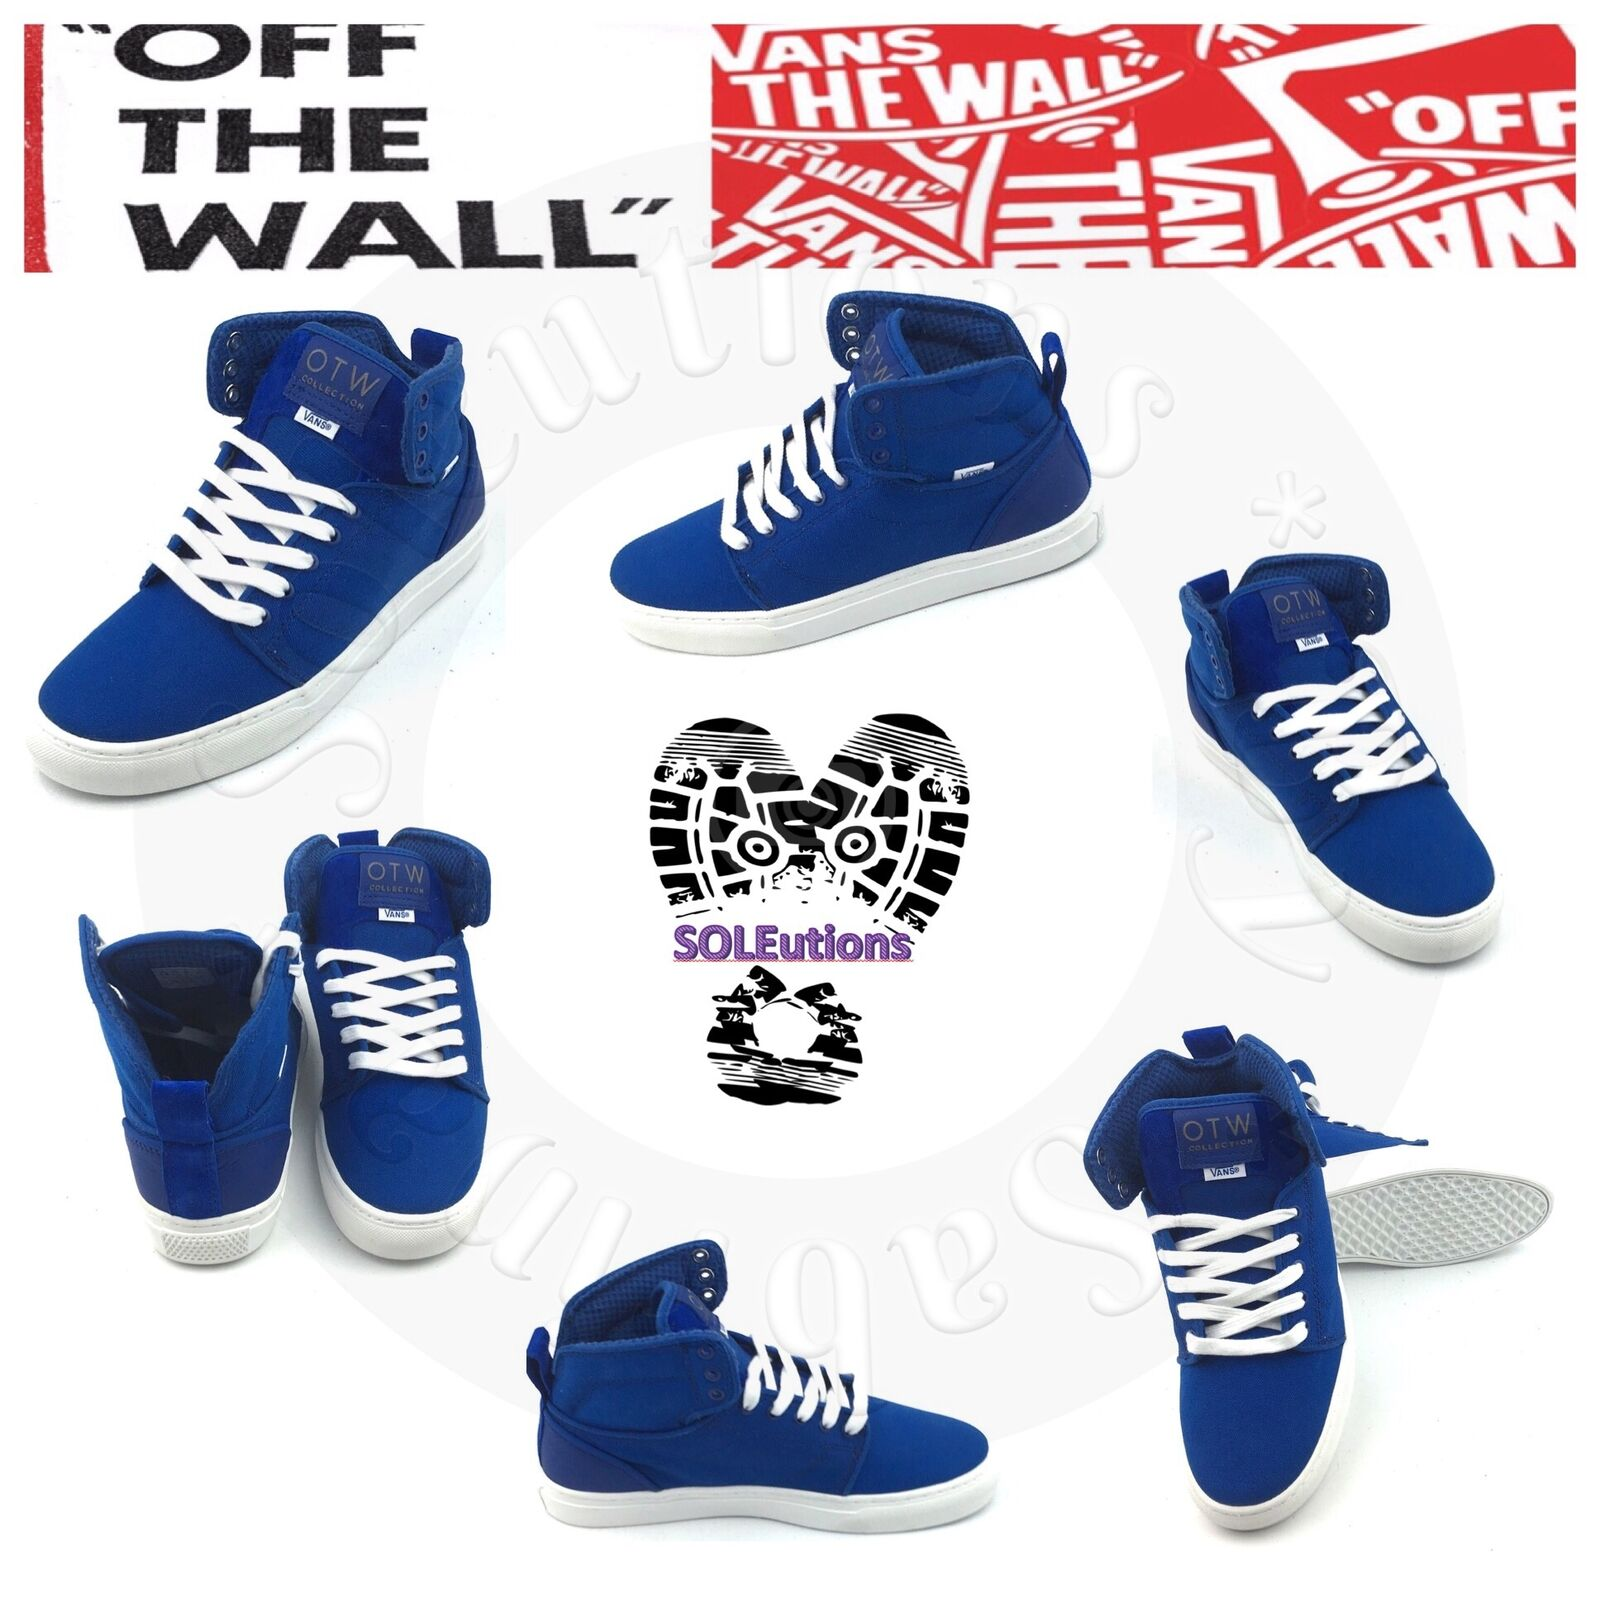 VANS OTW Alomar (Basic) bluee White M11